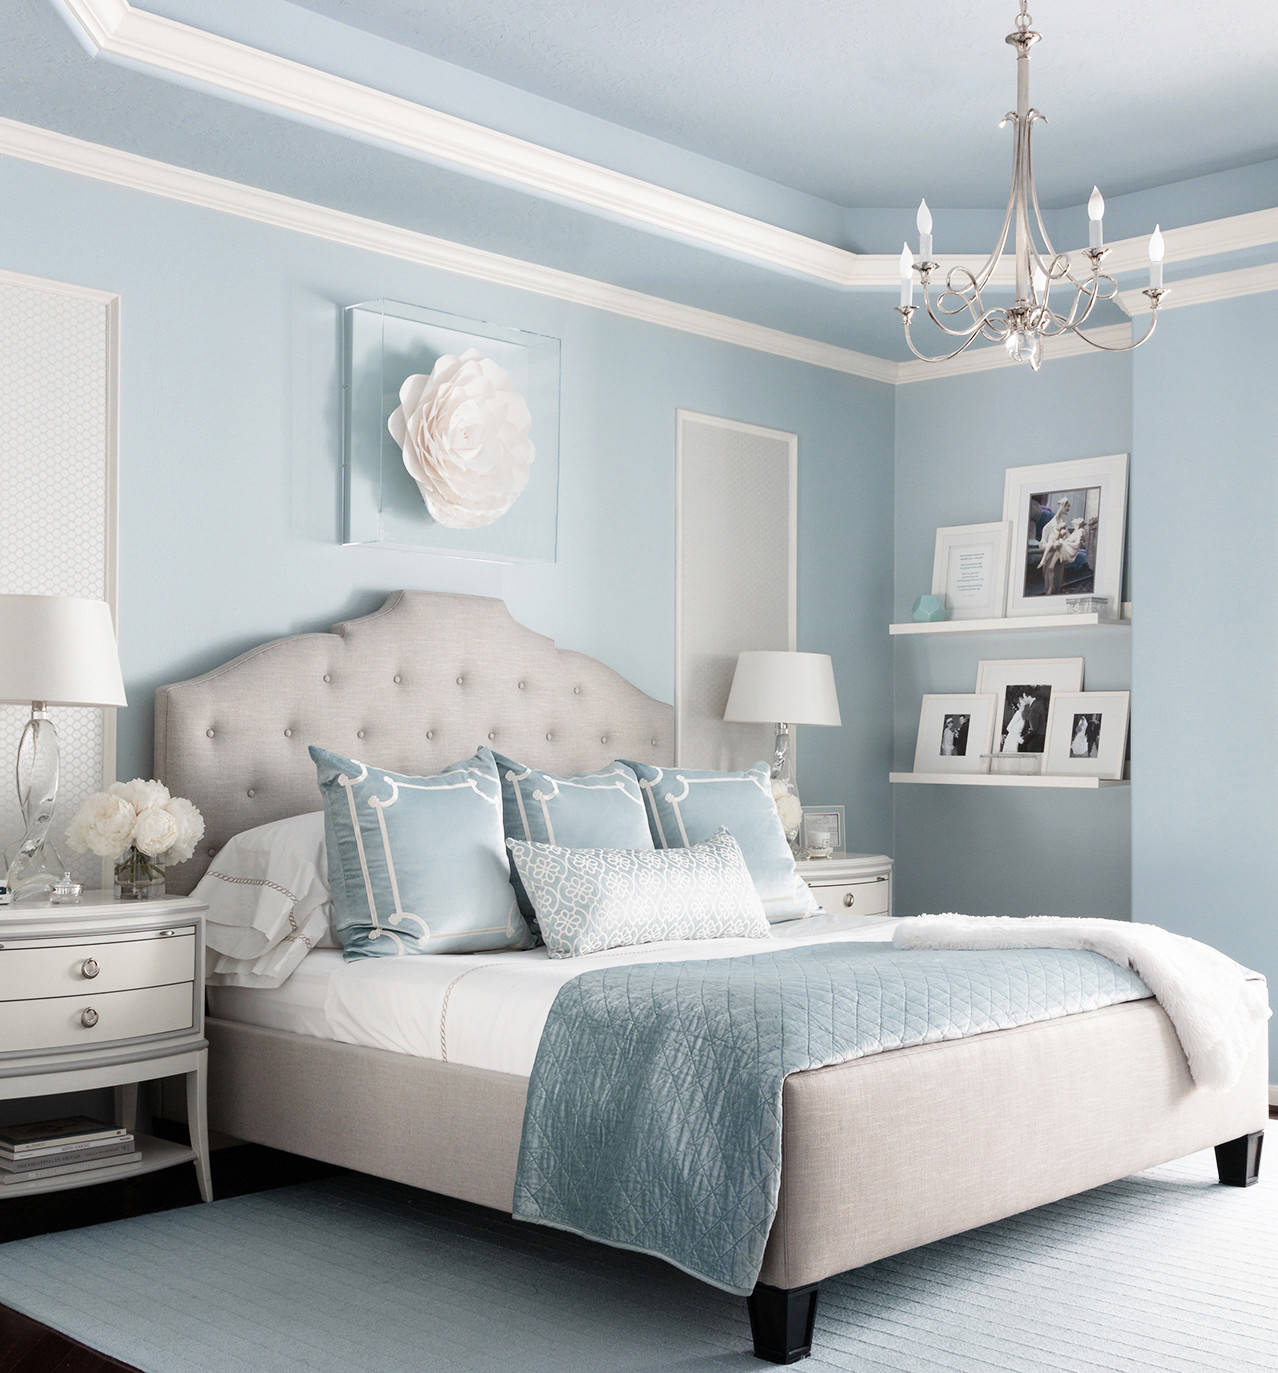 75 Beautiful Bedroom With Blue Walls Pictures Ideas January 2021 Houzz